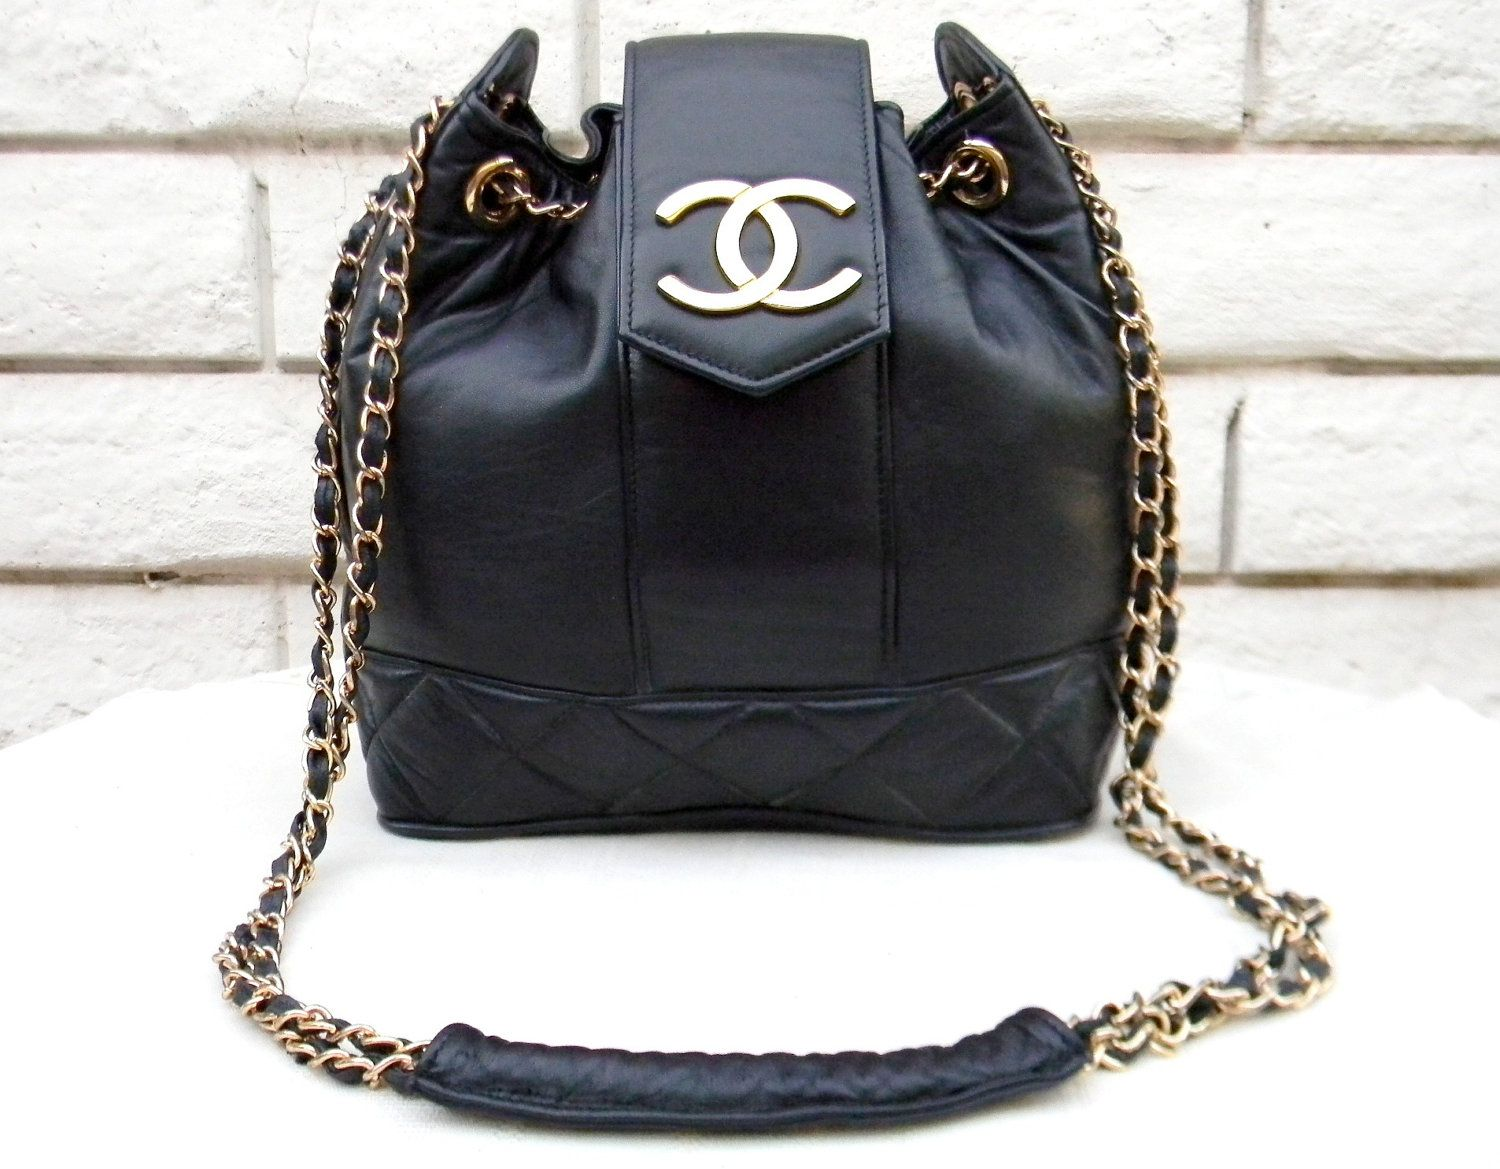 bd550cab8fae Vintage Chanel leather bucket bag with chain and flap with chanel logo.  Inventory